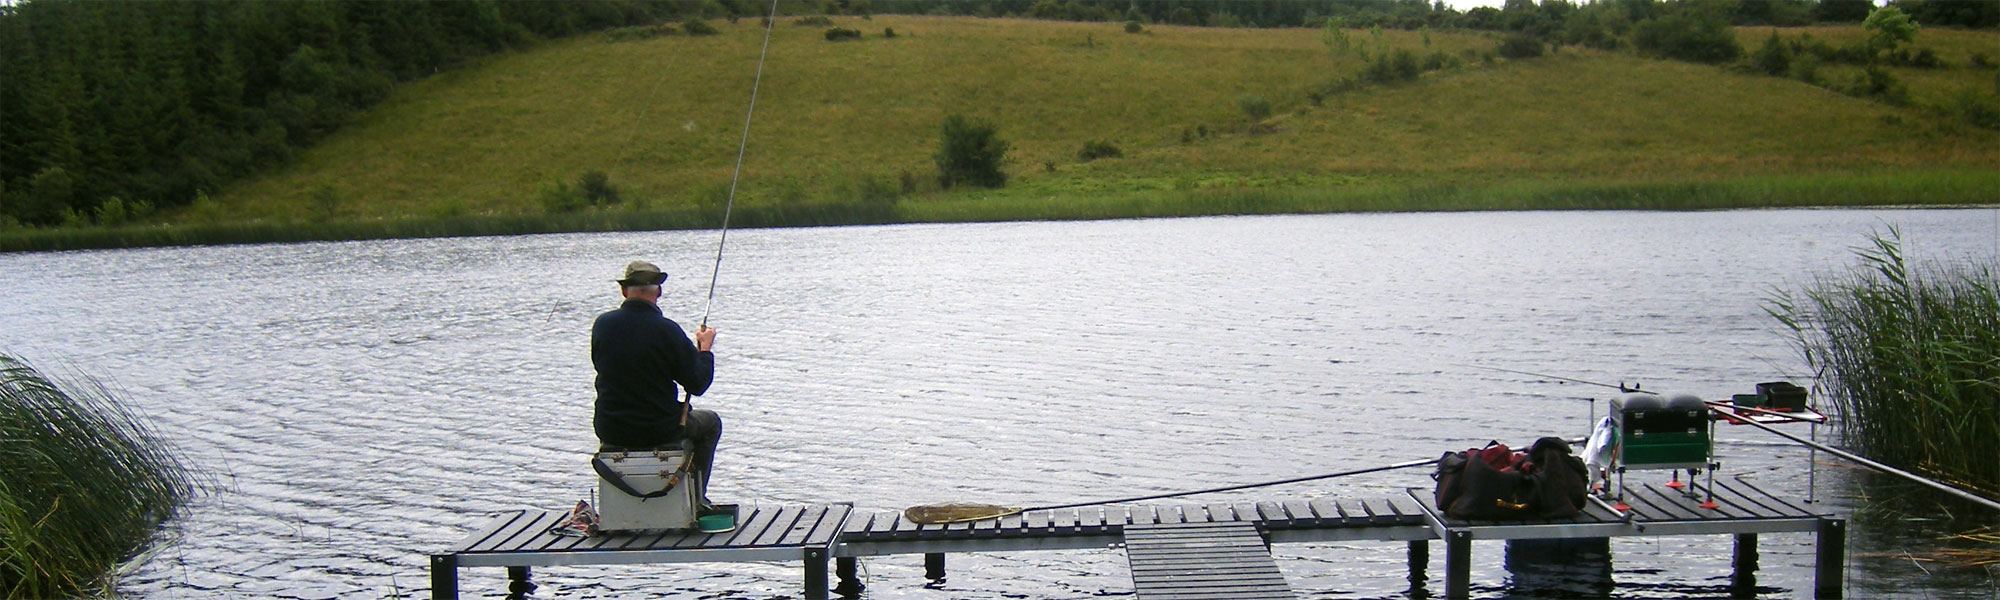 Fishing in Ireland with FIsh Tracker Angling Guide